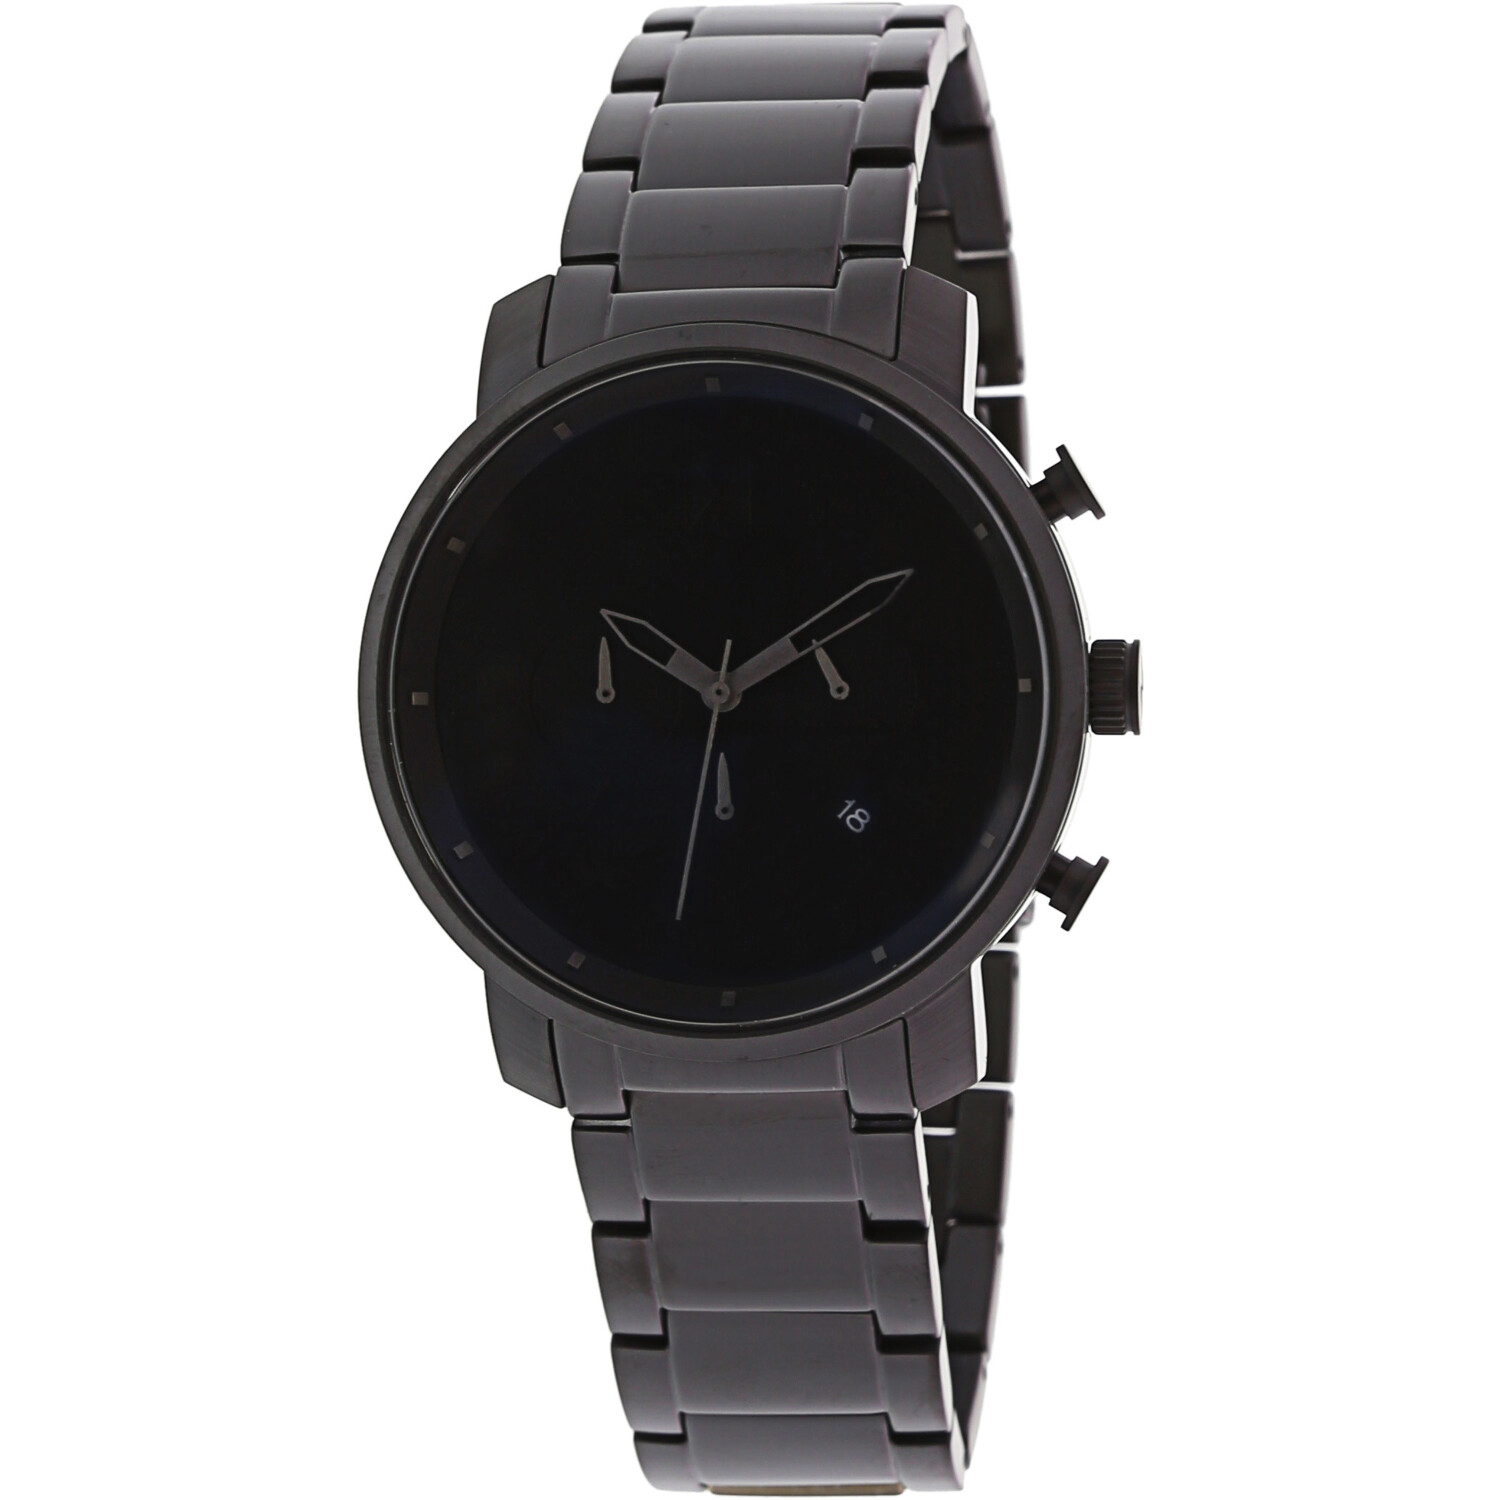 MVMT Men's Chrono MC01BB Black Stainless-Steel Analog Quartz Fashion Watch